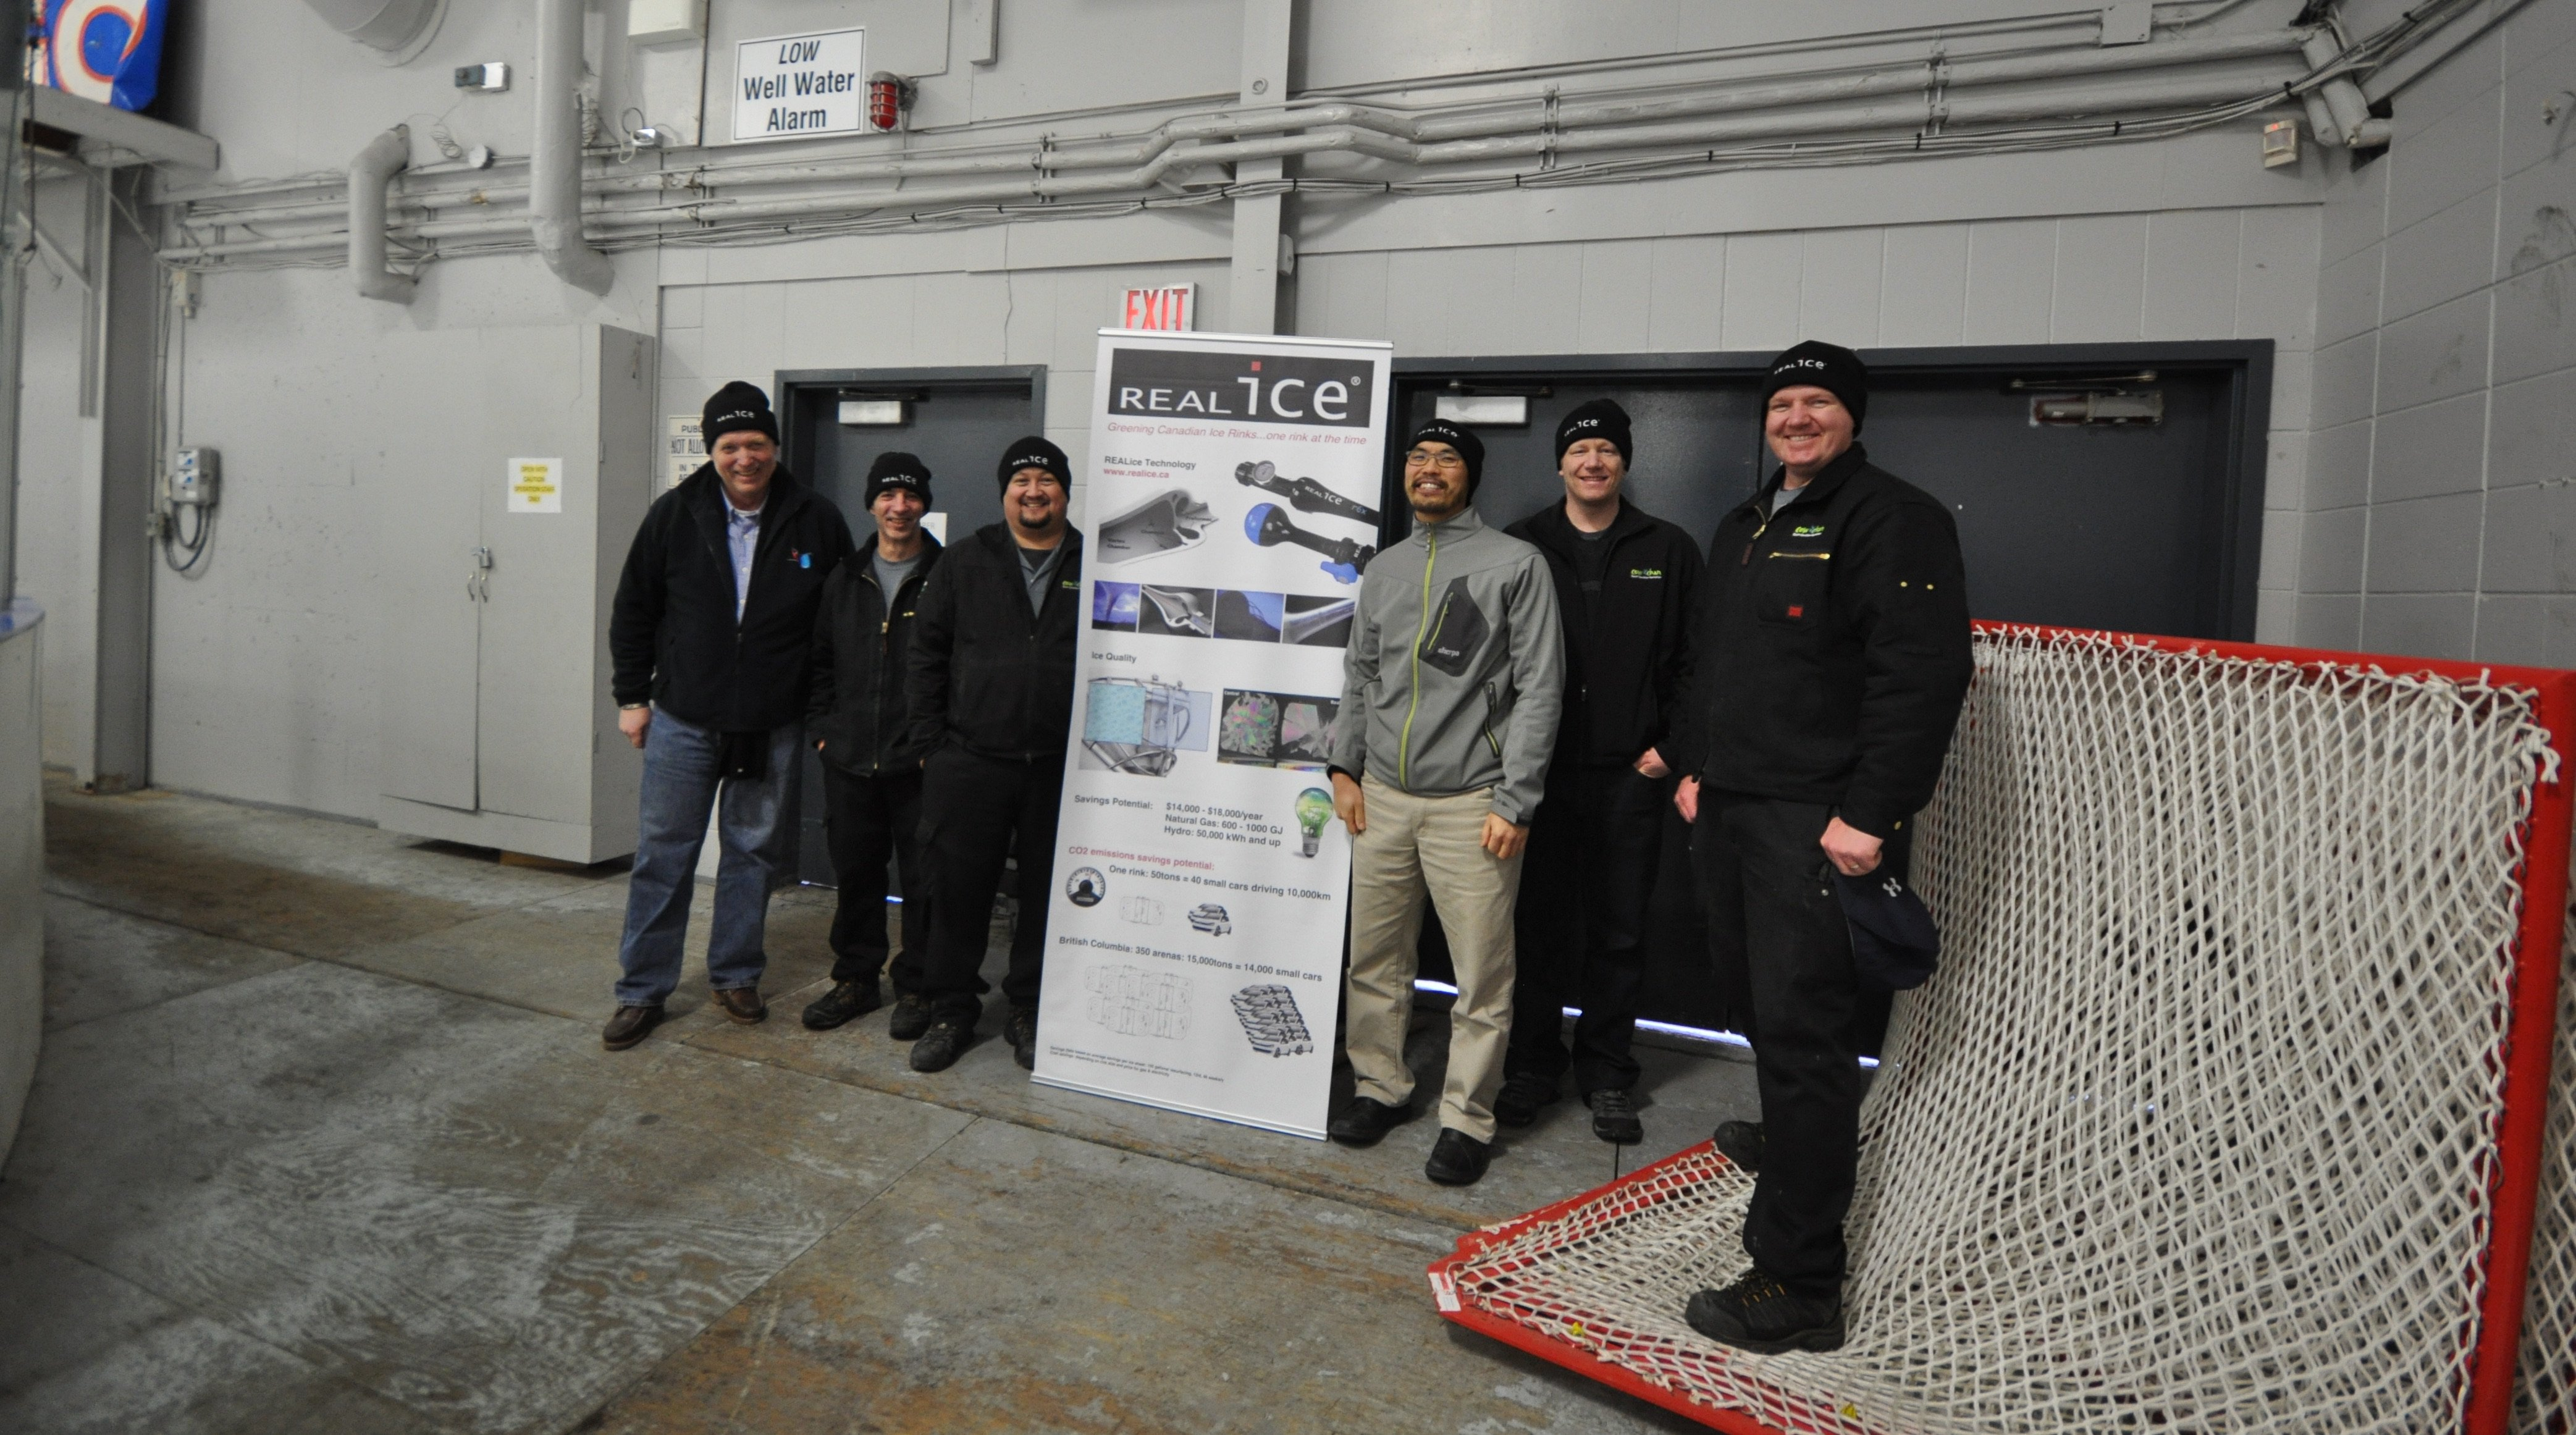 In the picture, the ice crew from Kerry Park Recreation Centre with Hakan Gronlund (H20 Vortex at the very left) and Kuan-Jian Foo (former energy manager Cowichan Valley Region District, third from the right). Source water